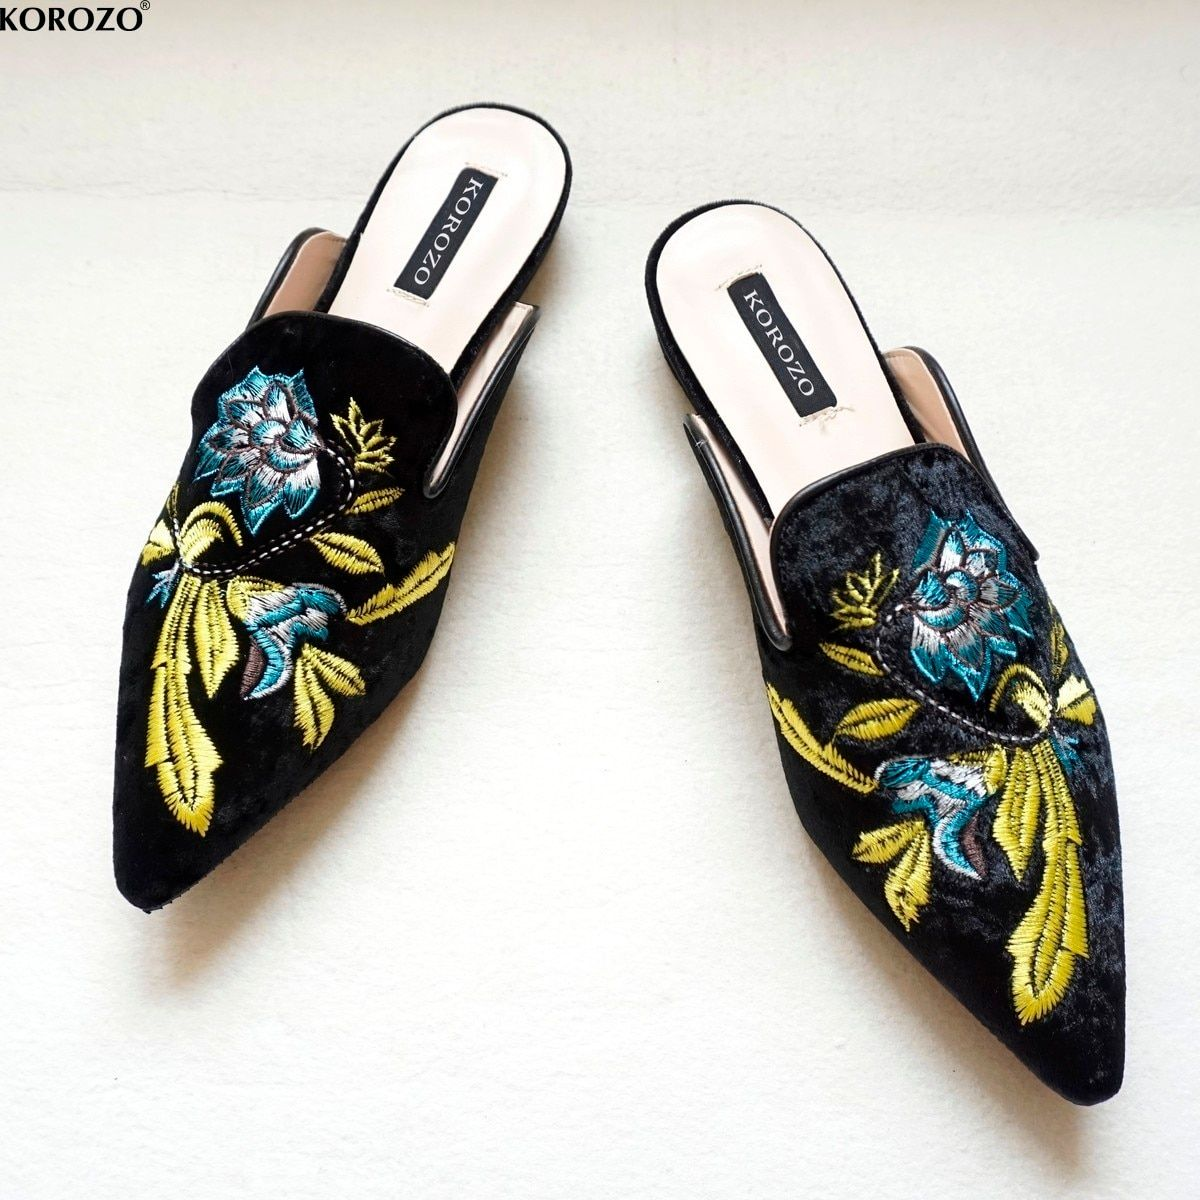 2018 Women Embroidery Velet Mules Slides Chiara Ferragni Dress Slipper 1.5cm Heel Flip Flops Slipony Slip On Sandals Shoes